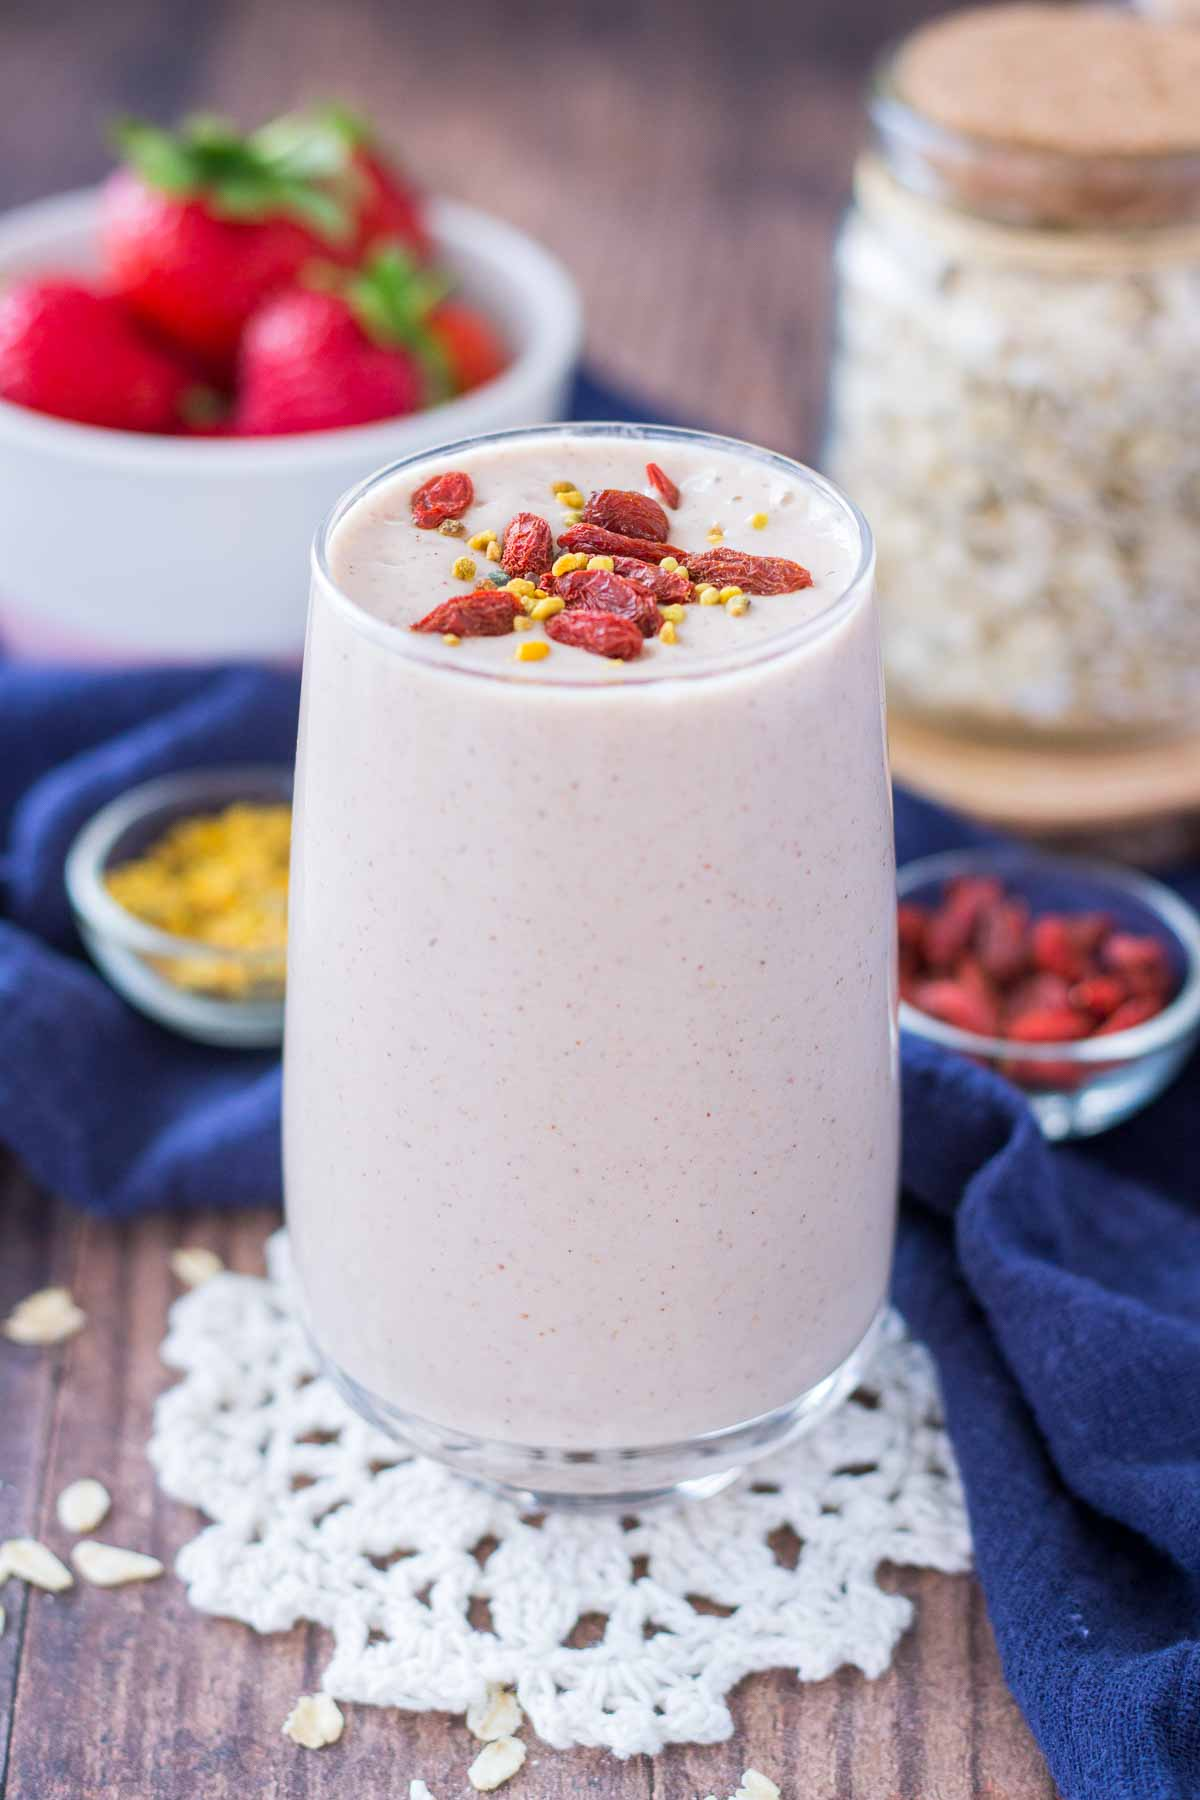 Strawberry Oatmeal Smoothie served in a glass topped with goji berries